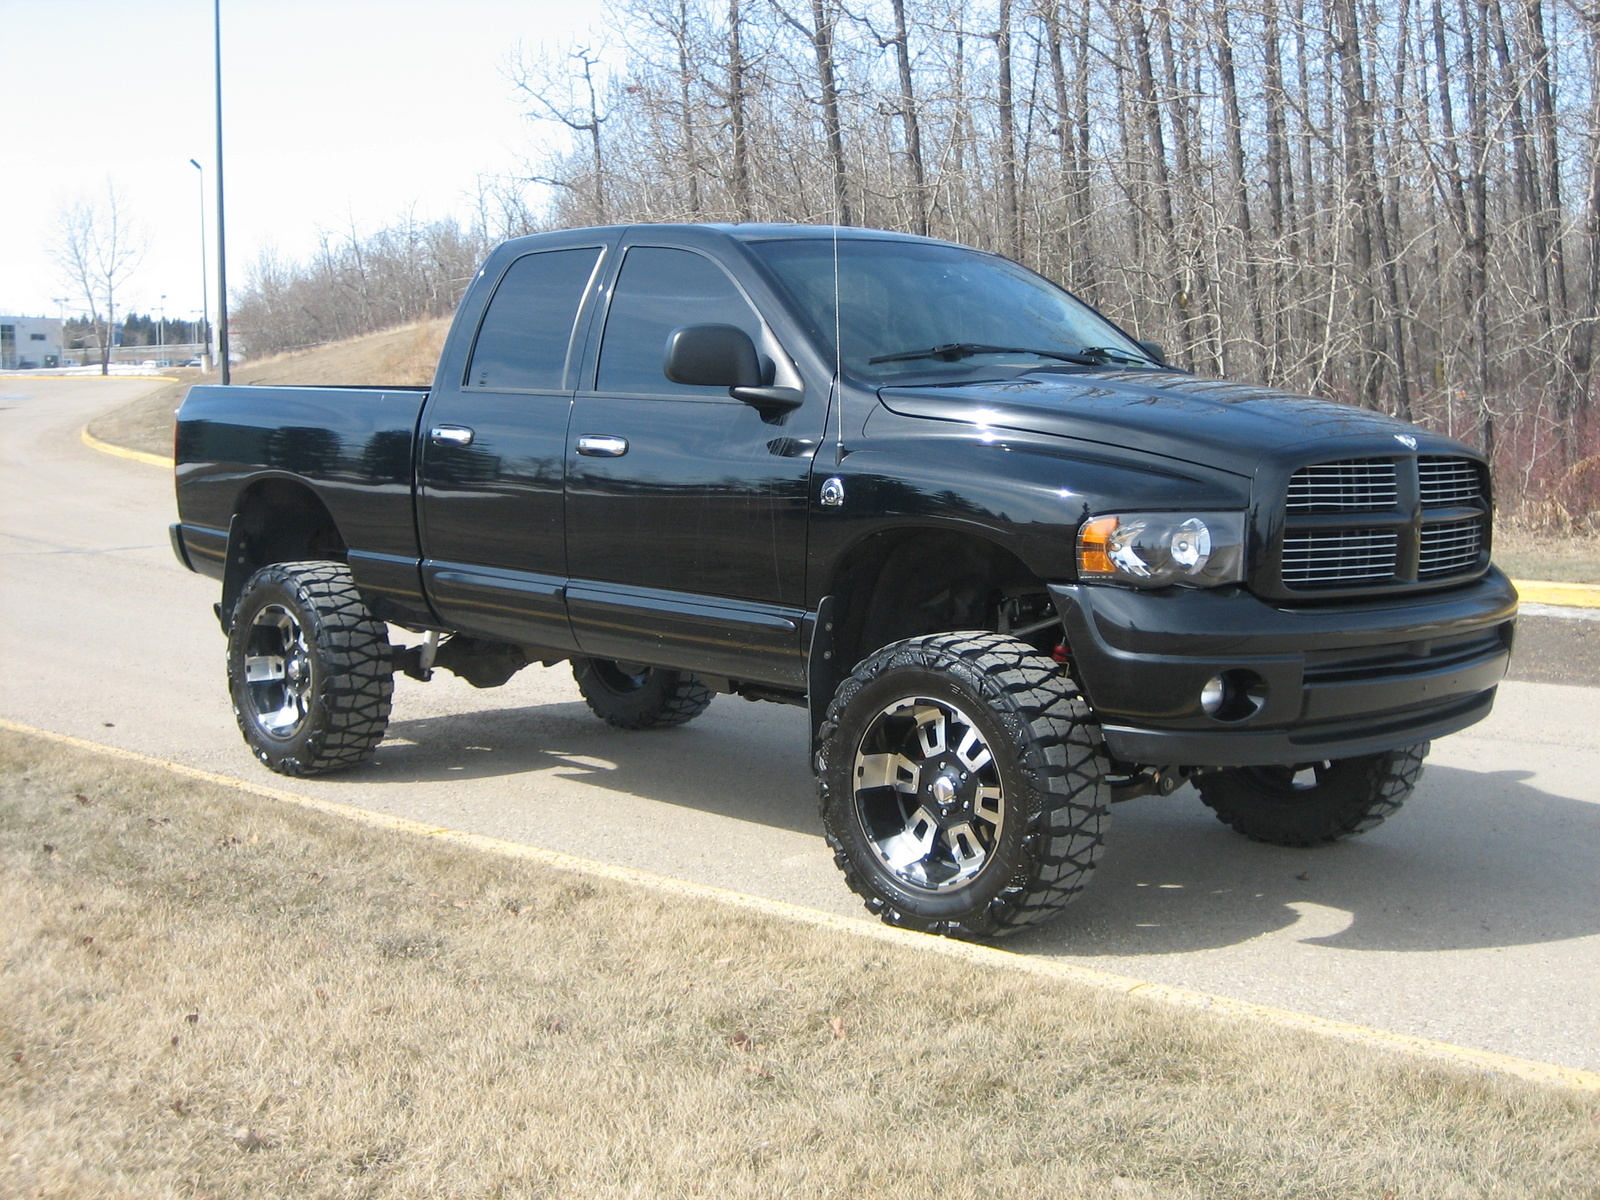 2004 dodge ram pickup 1500 pictures cargurus. Black Bedroom Furniture Sets. Home Design Ideas